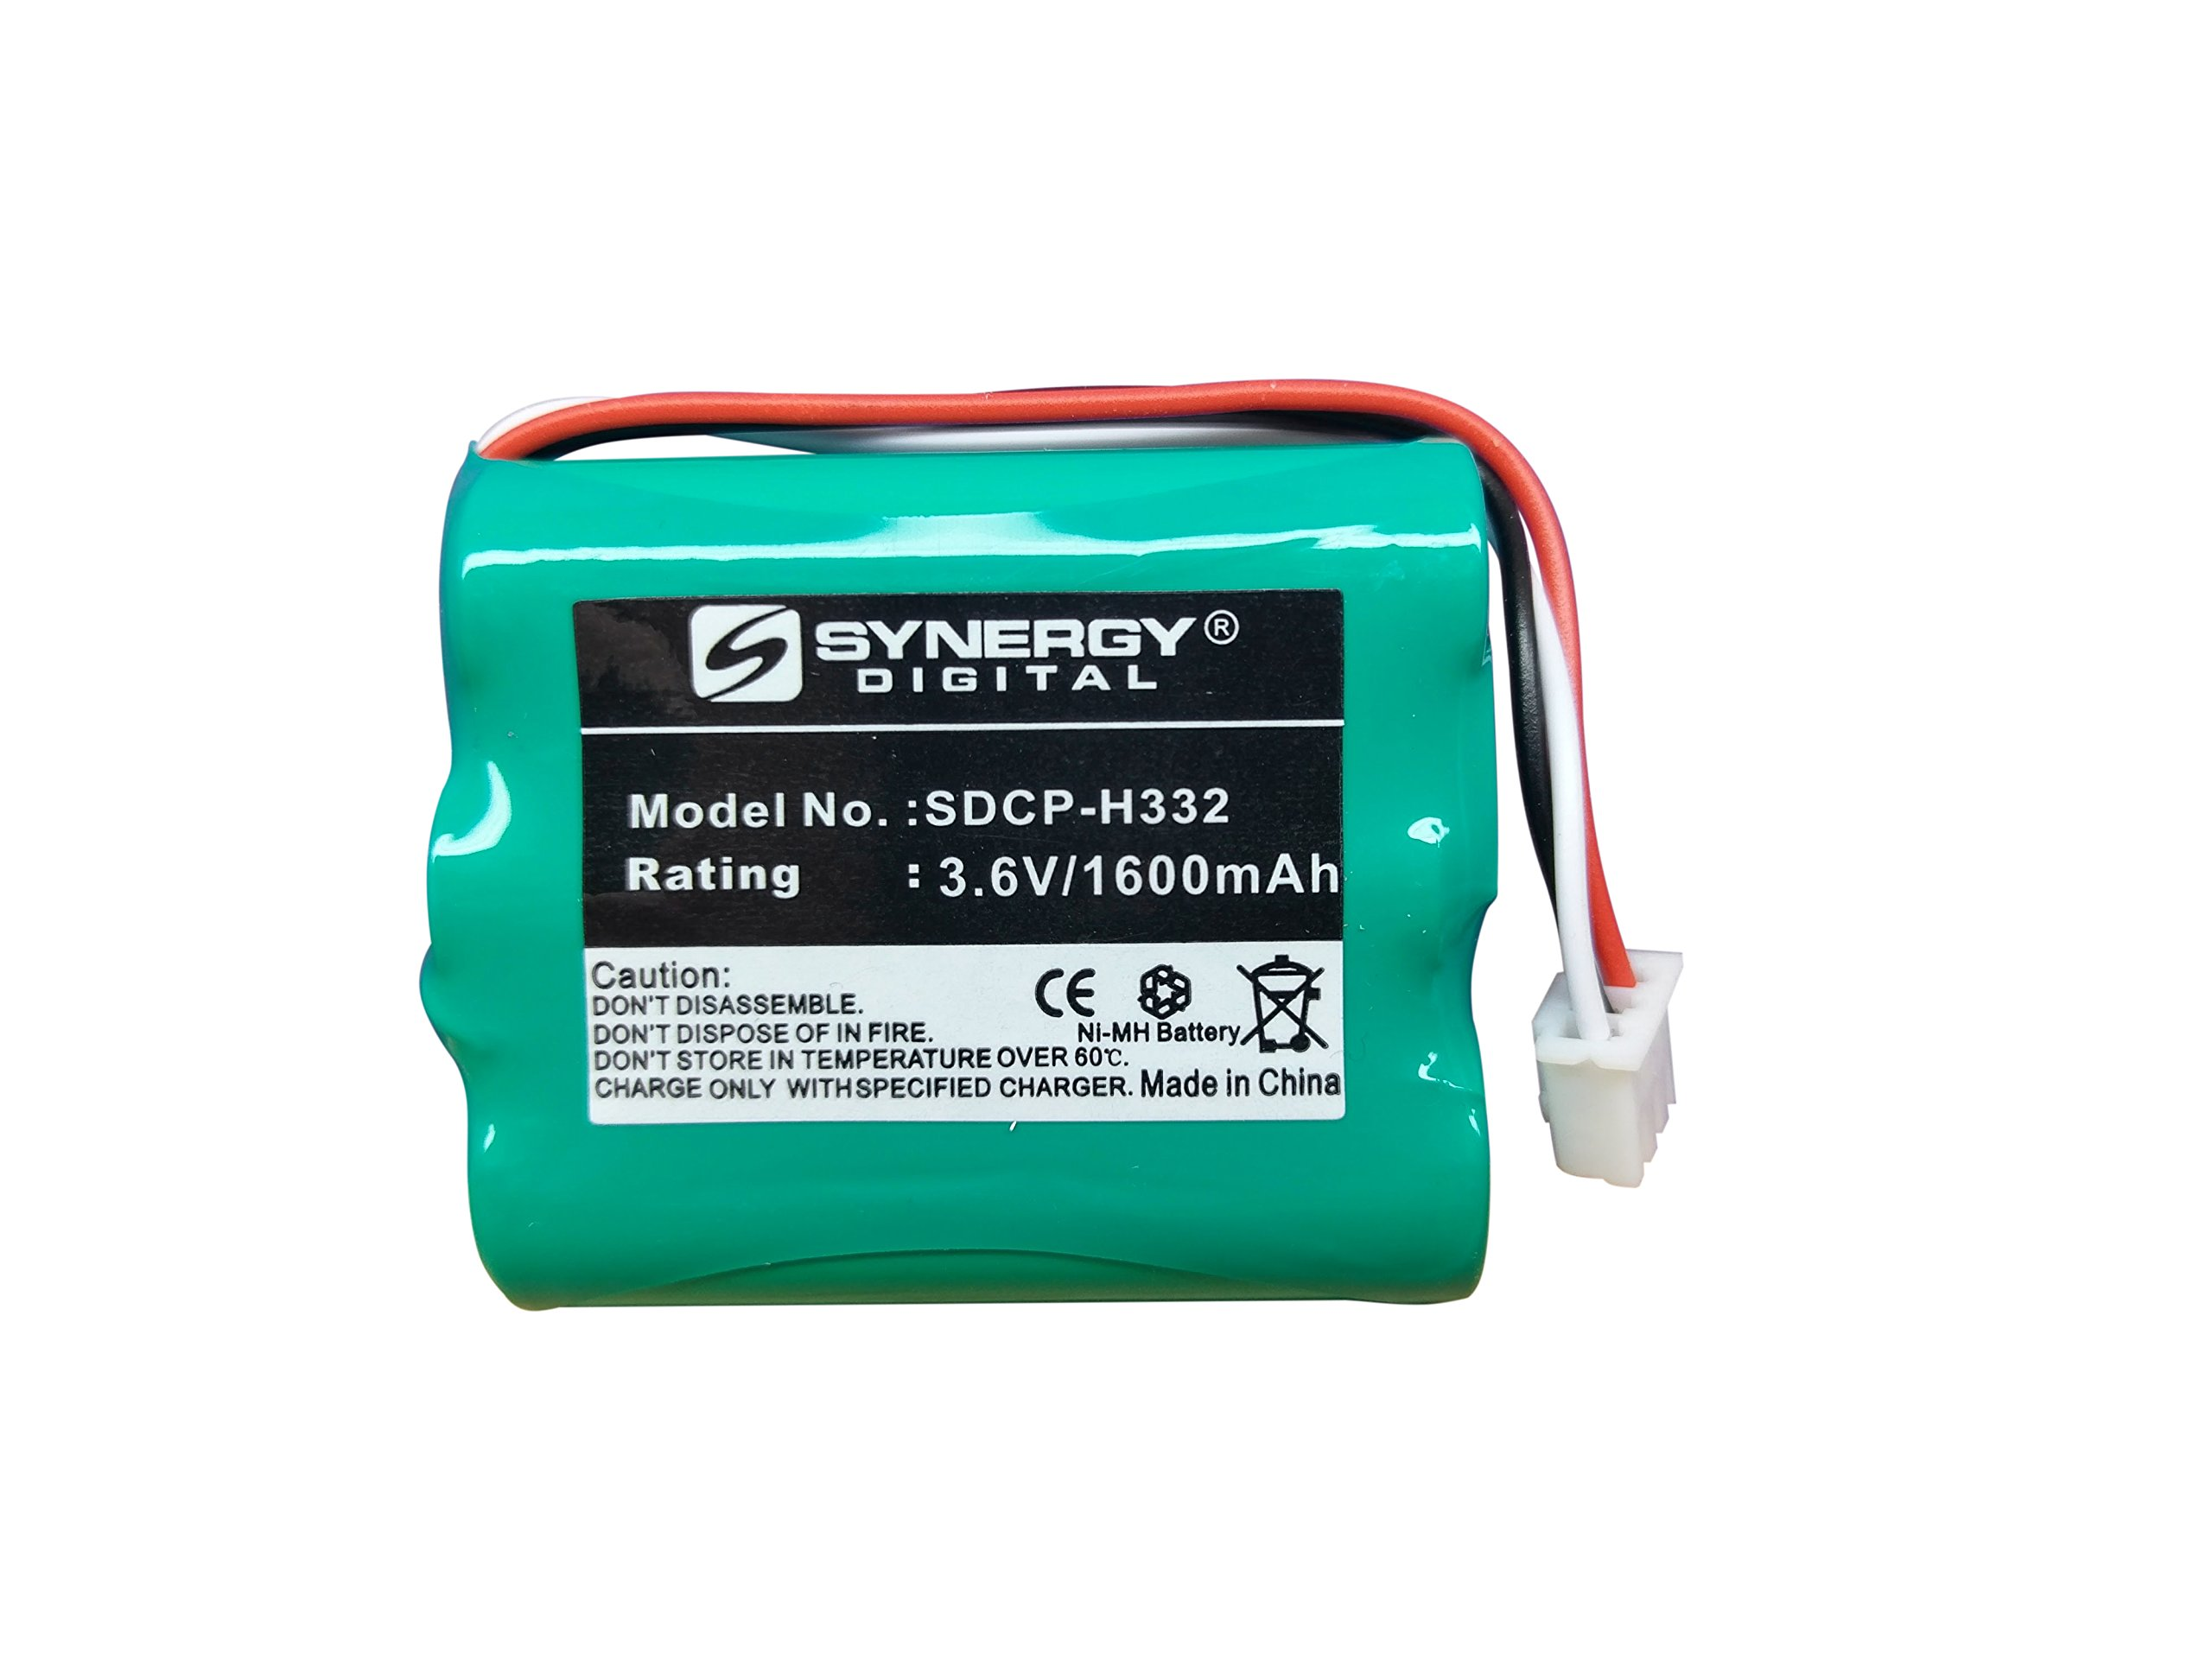 Huawei HOME PHONE CONNECT Cordless Phone Battery NiMh, 3.6 Volt, 1500 mAh, Replacement Battery for HUWEI HGB-15AAX3 Cordless Phone Battery